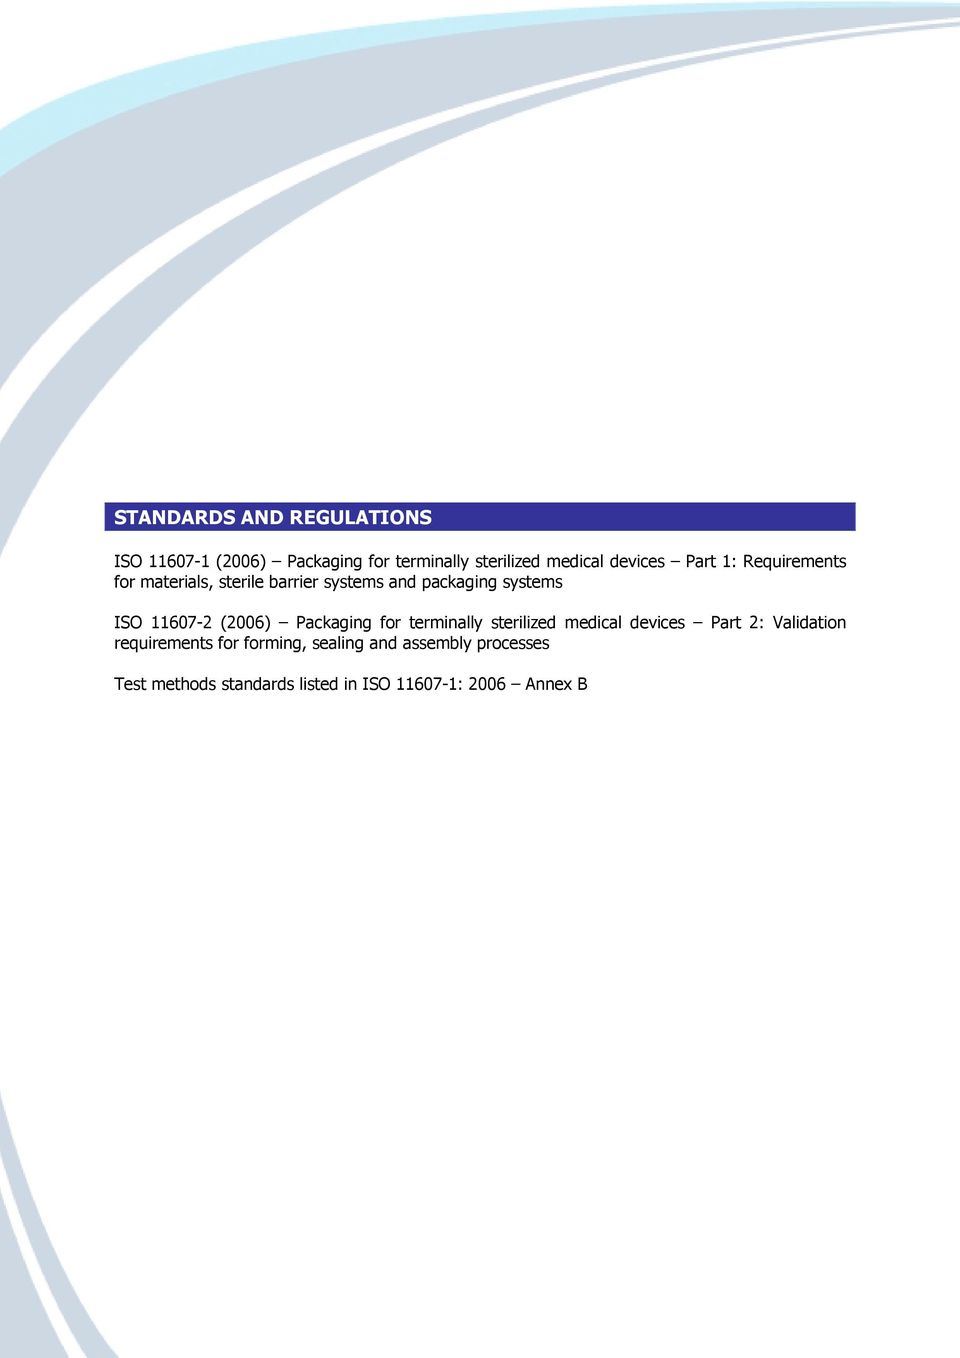 Packaging Validation according to ISO PDF